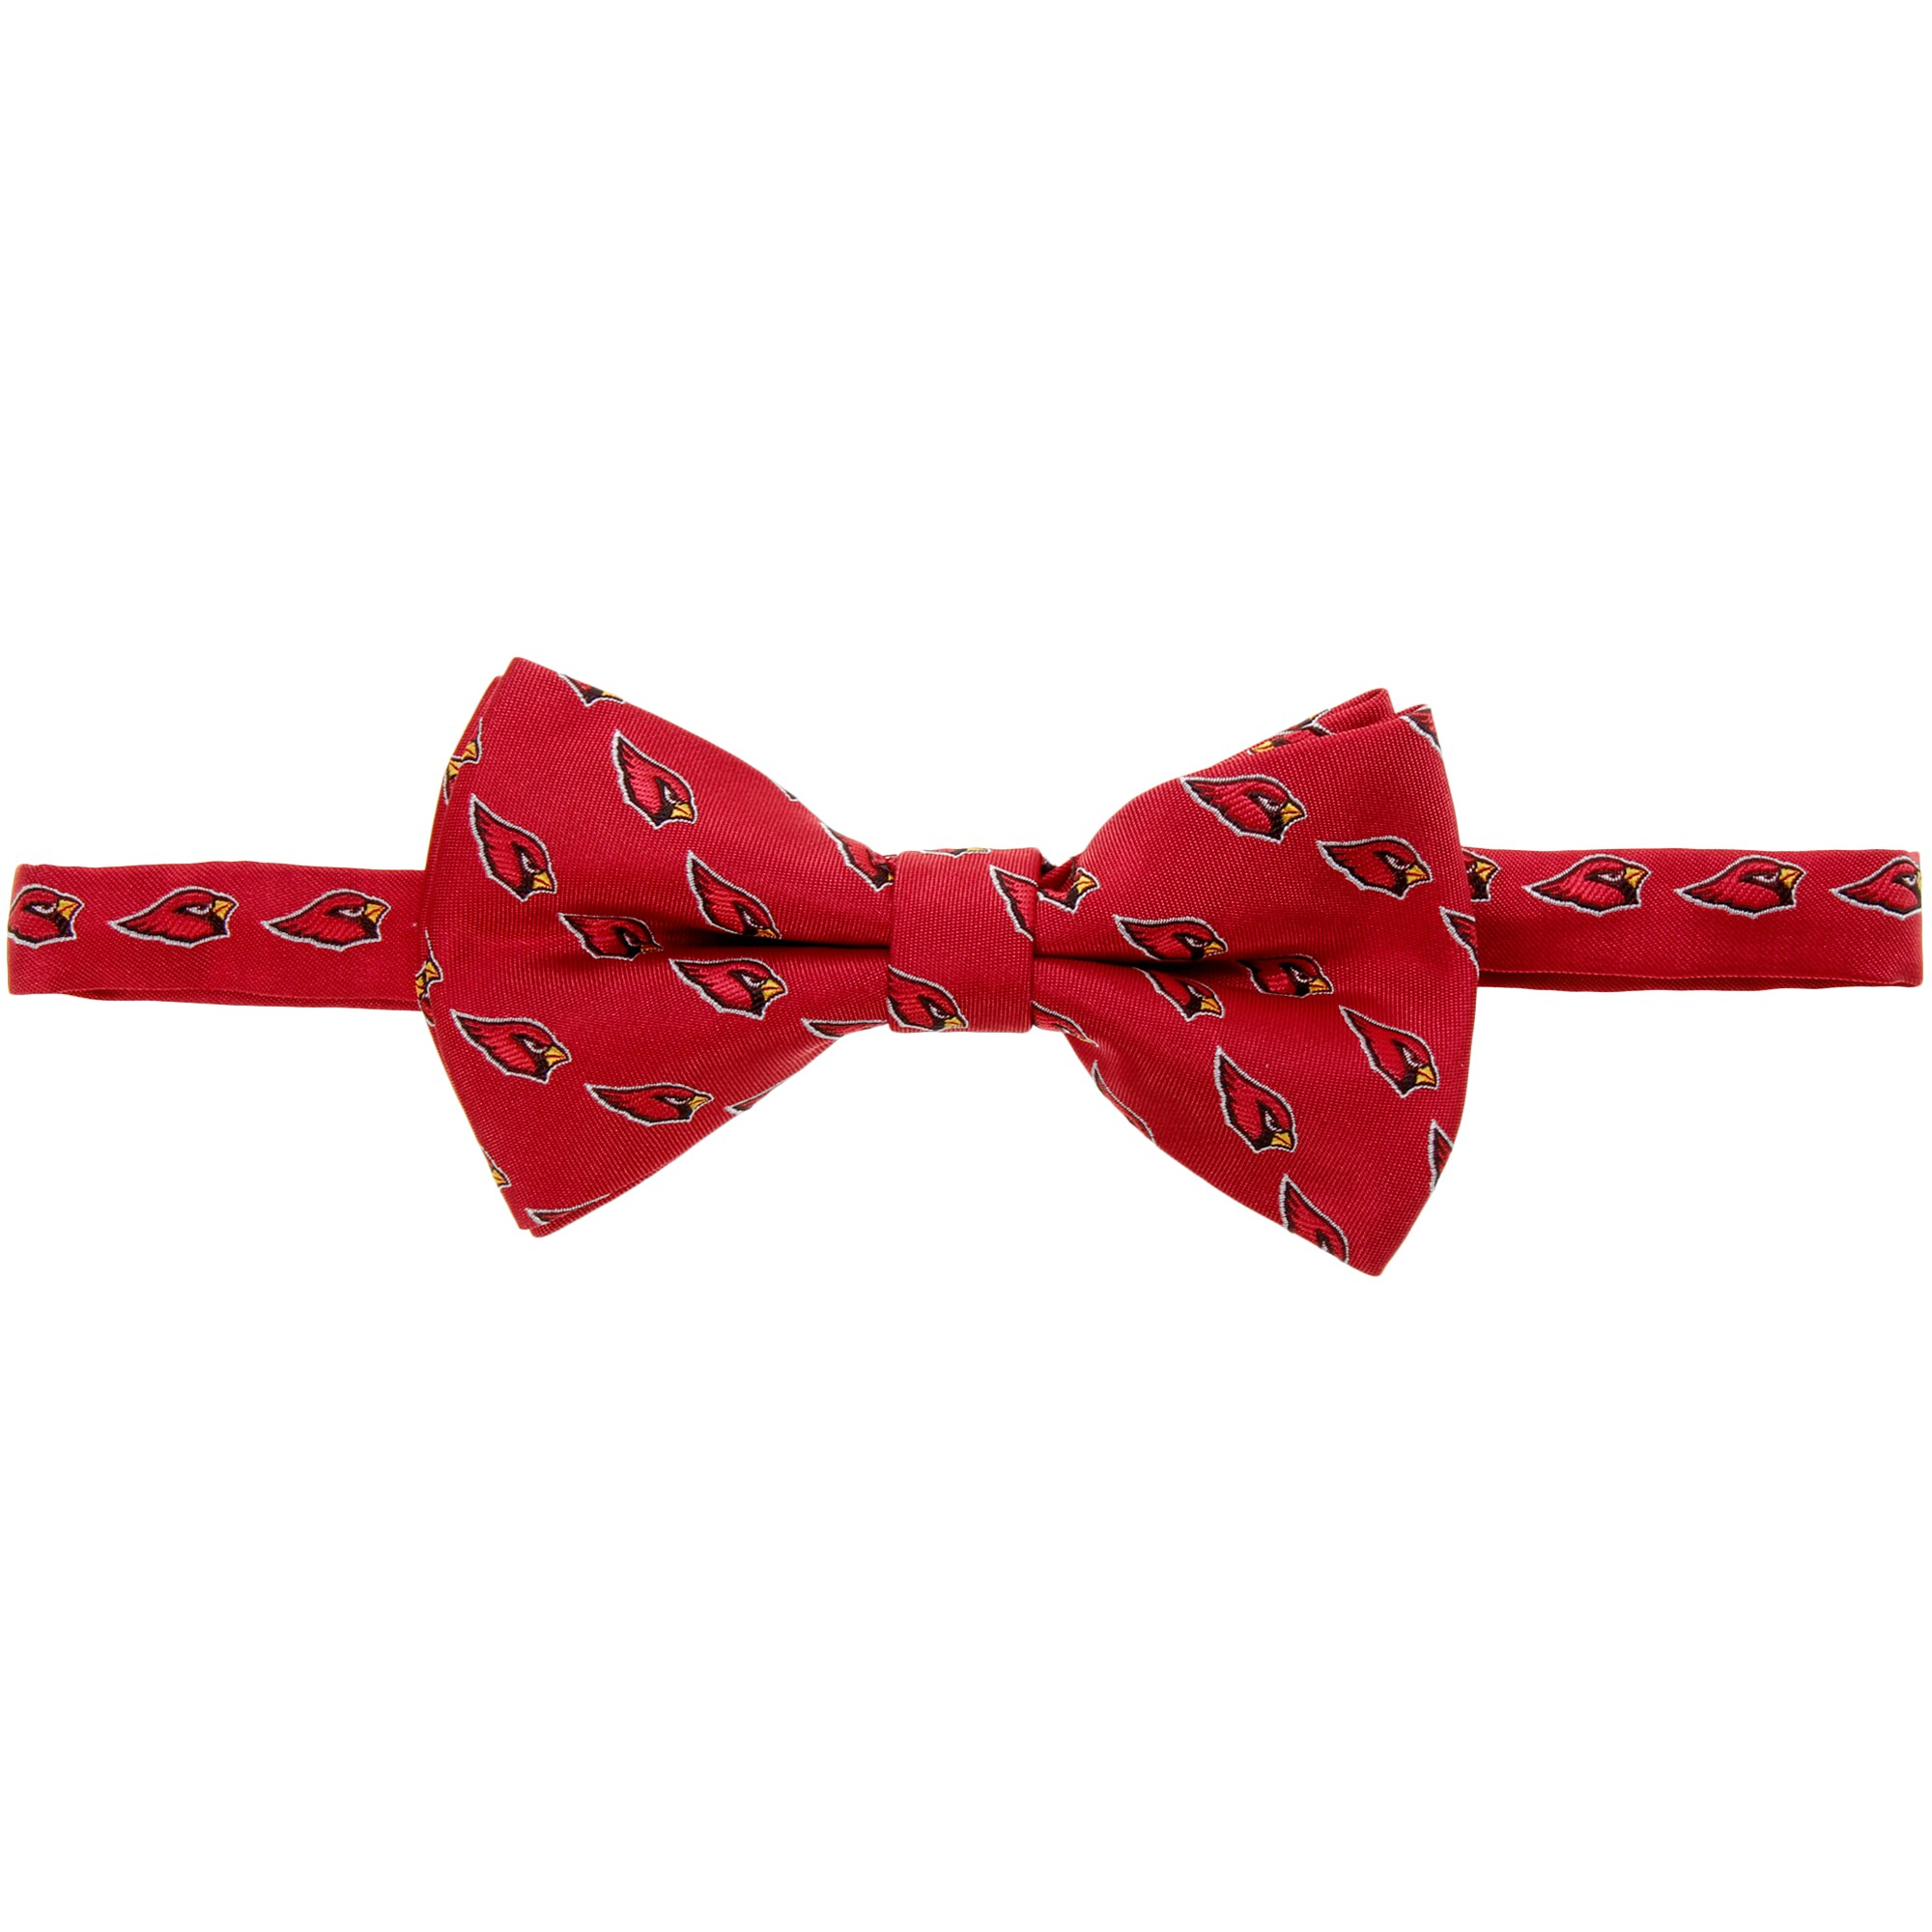 Arizona Cardinals Repeat Bow Tie